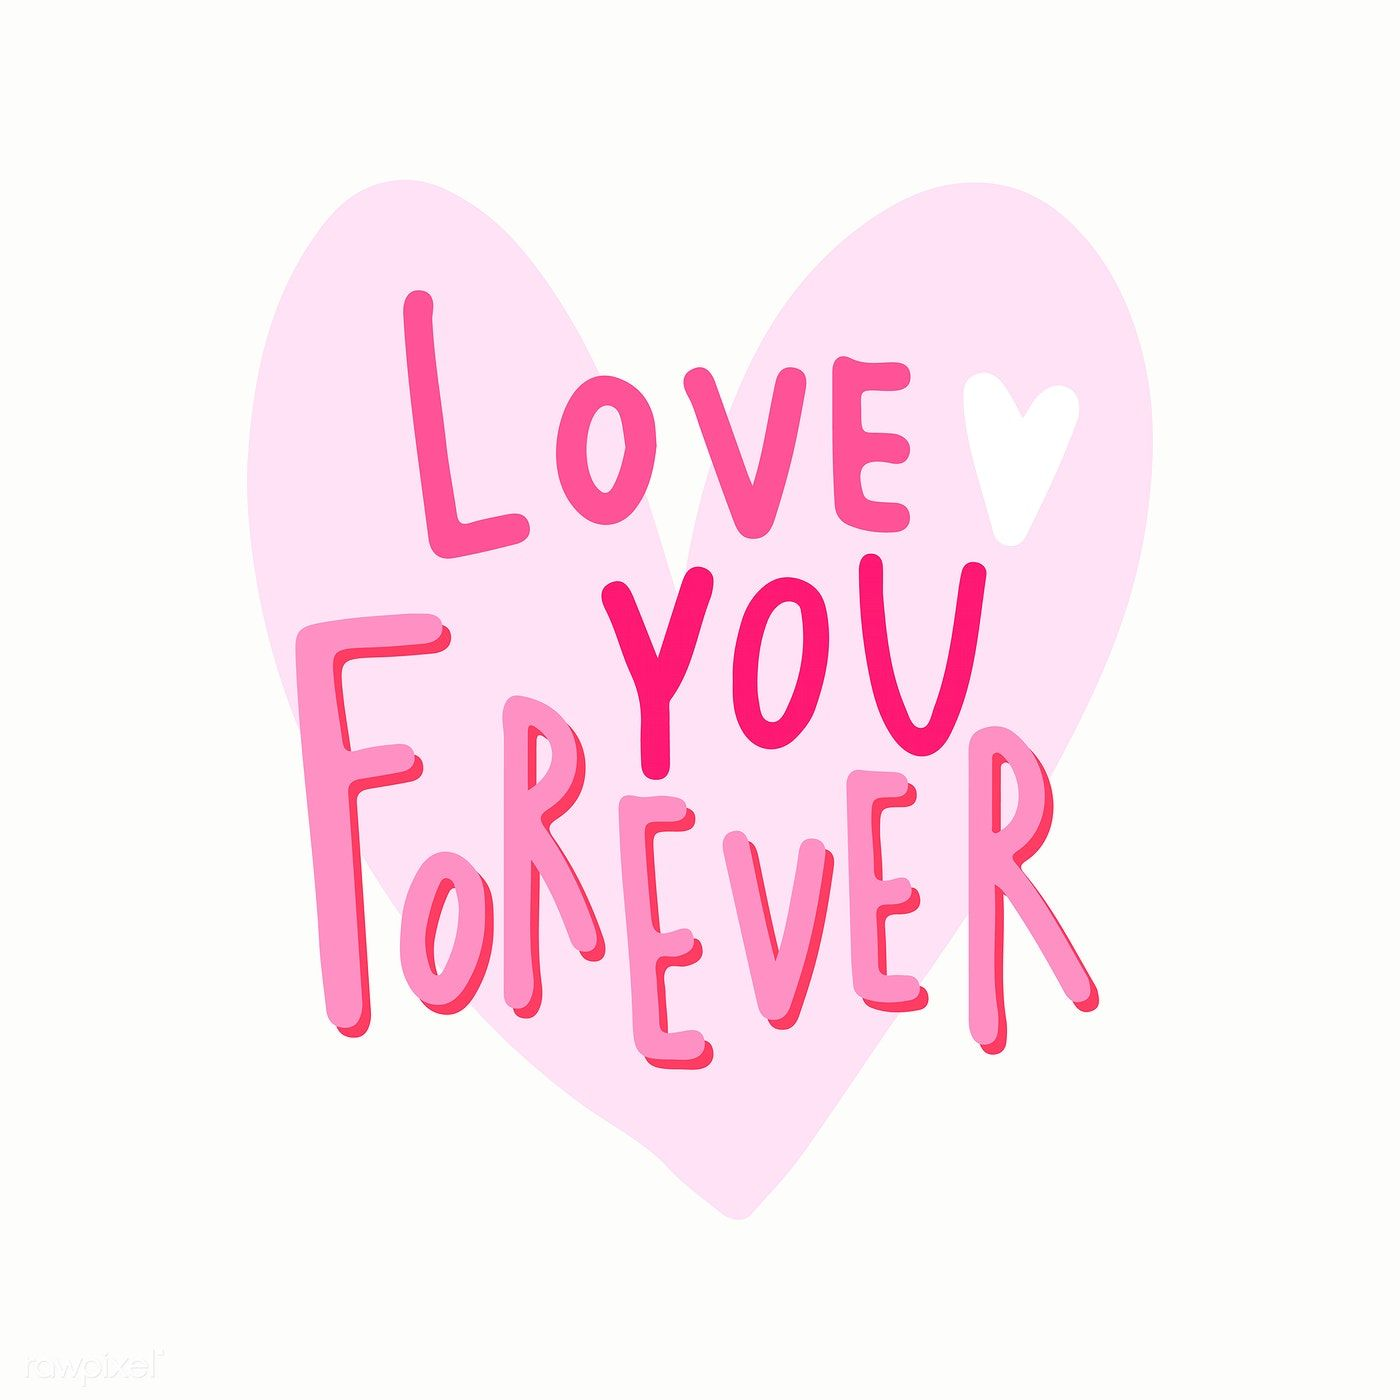 Download Love you forever typography vector | free image by ...